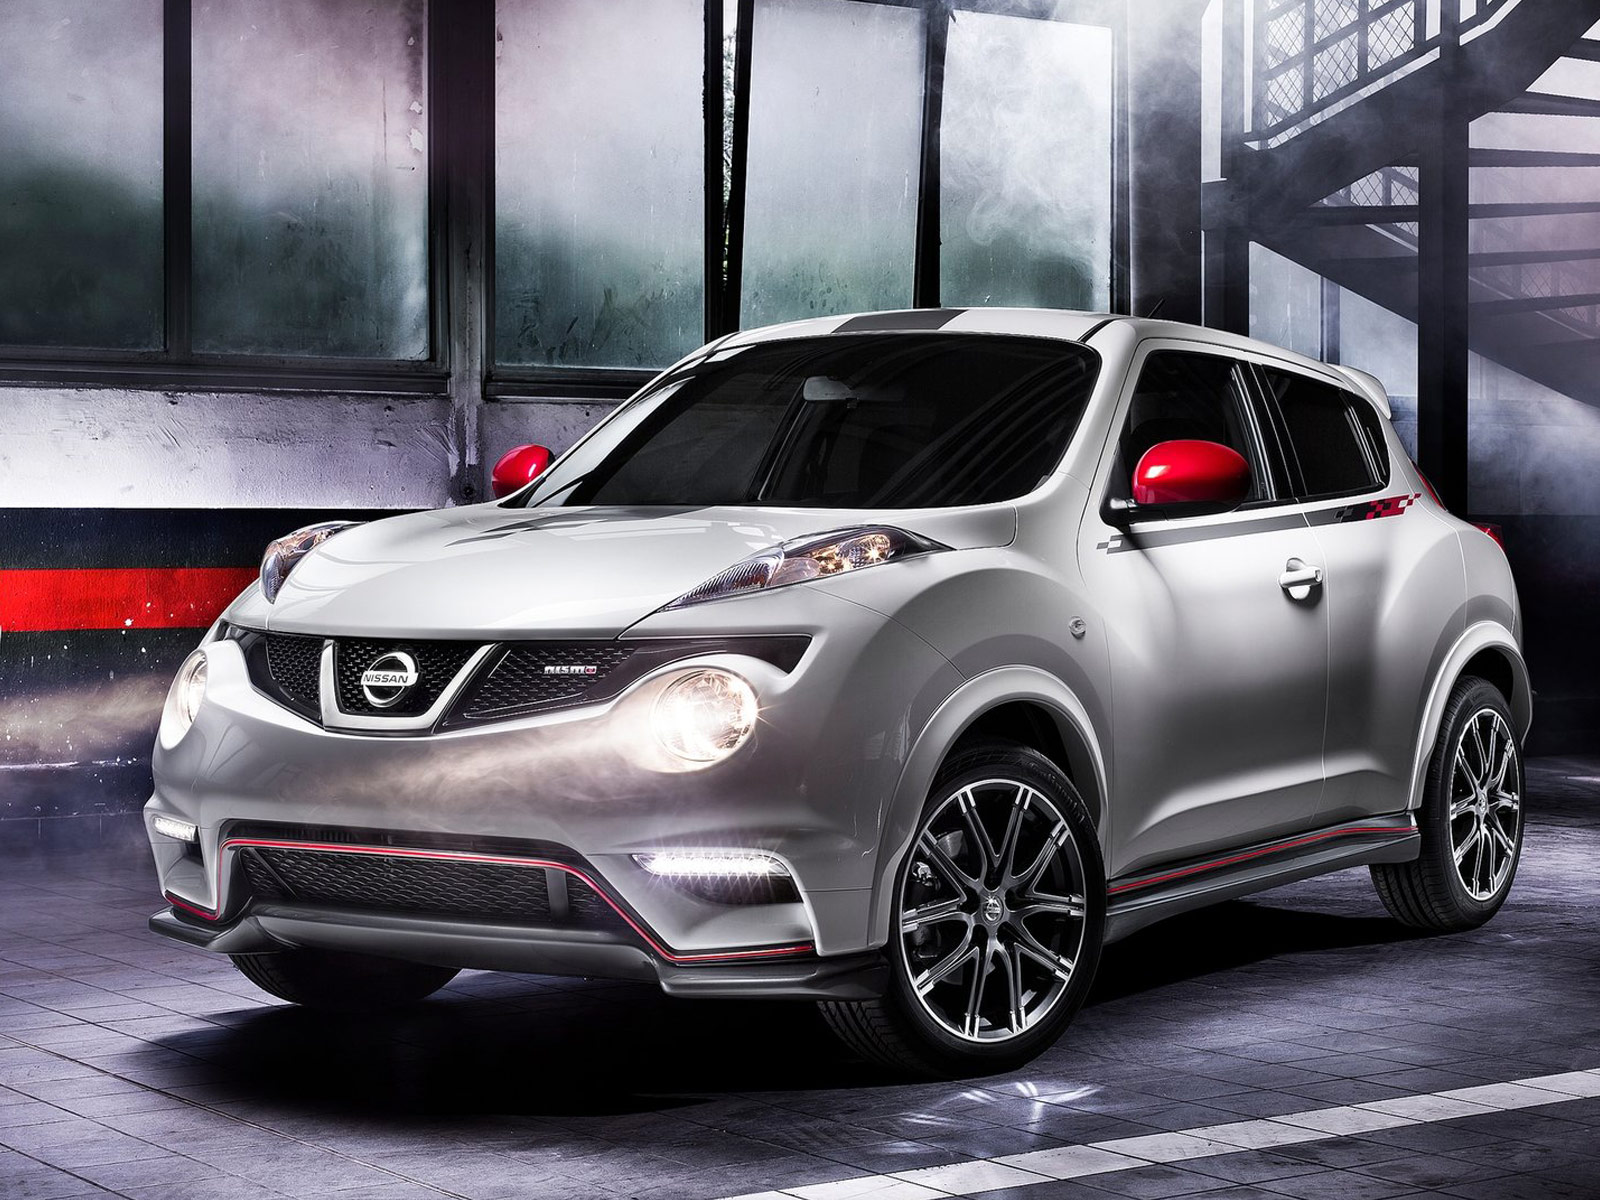 2013 nissan juke nismo insurance information. Black Bedroom Furniture Sets. Home Design Ideas